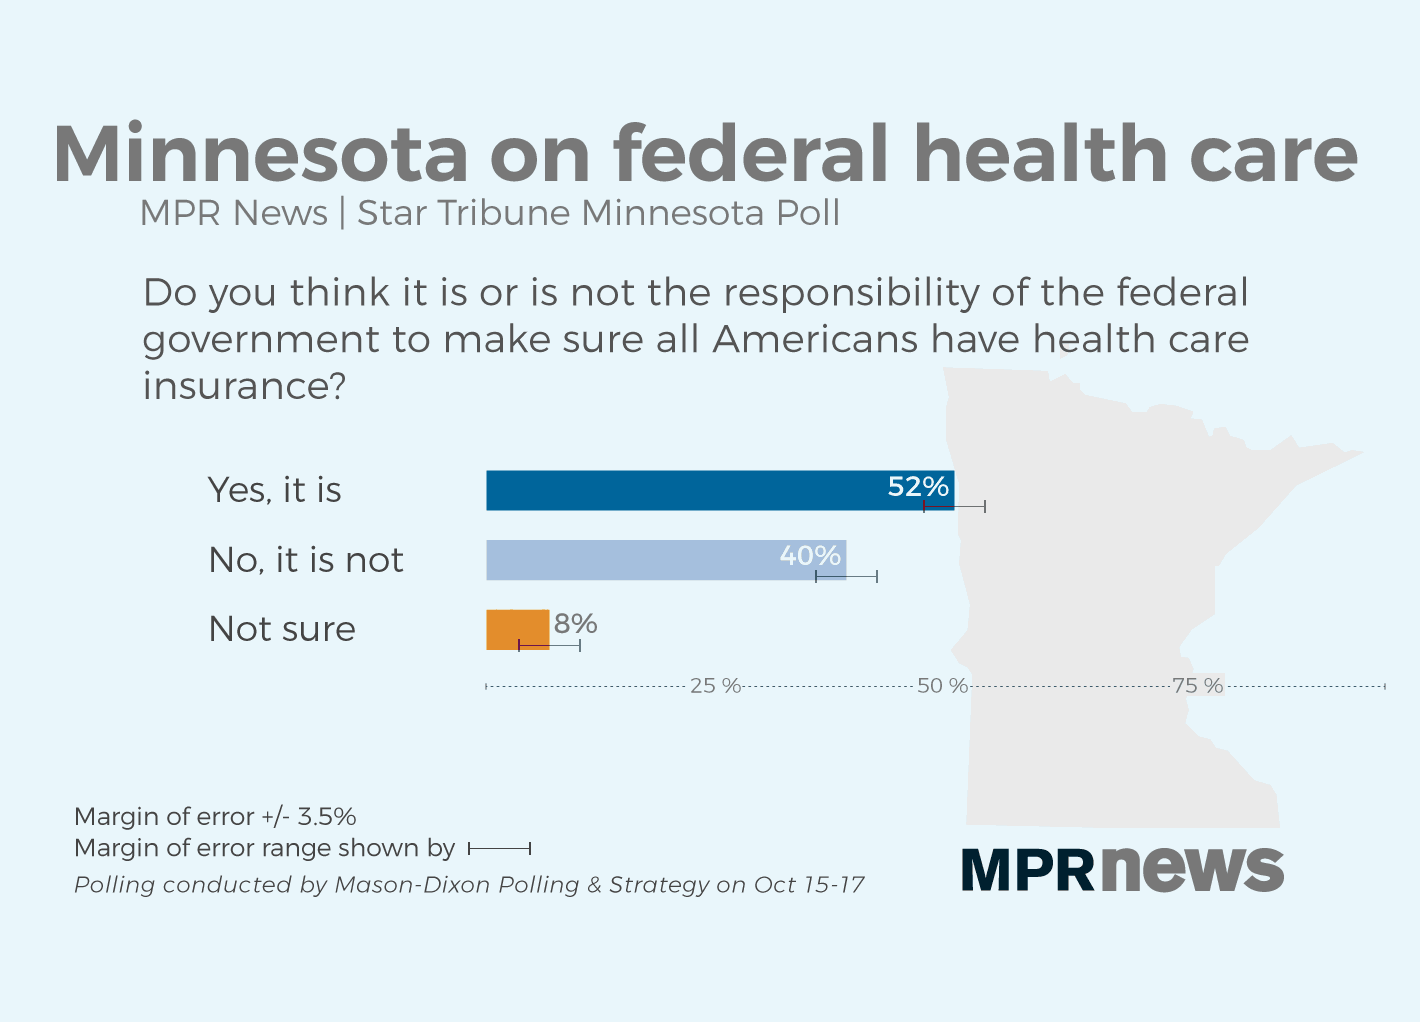 Many Minnesotans support federal access to health care